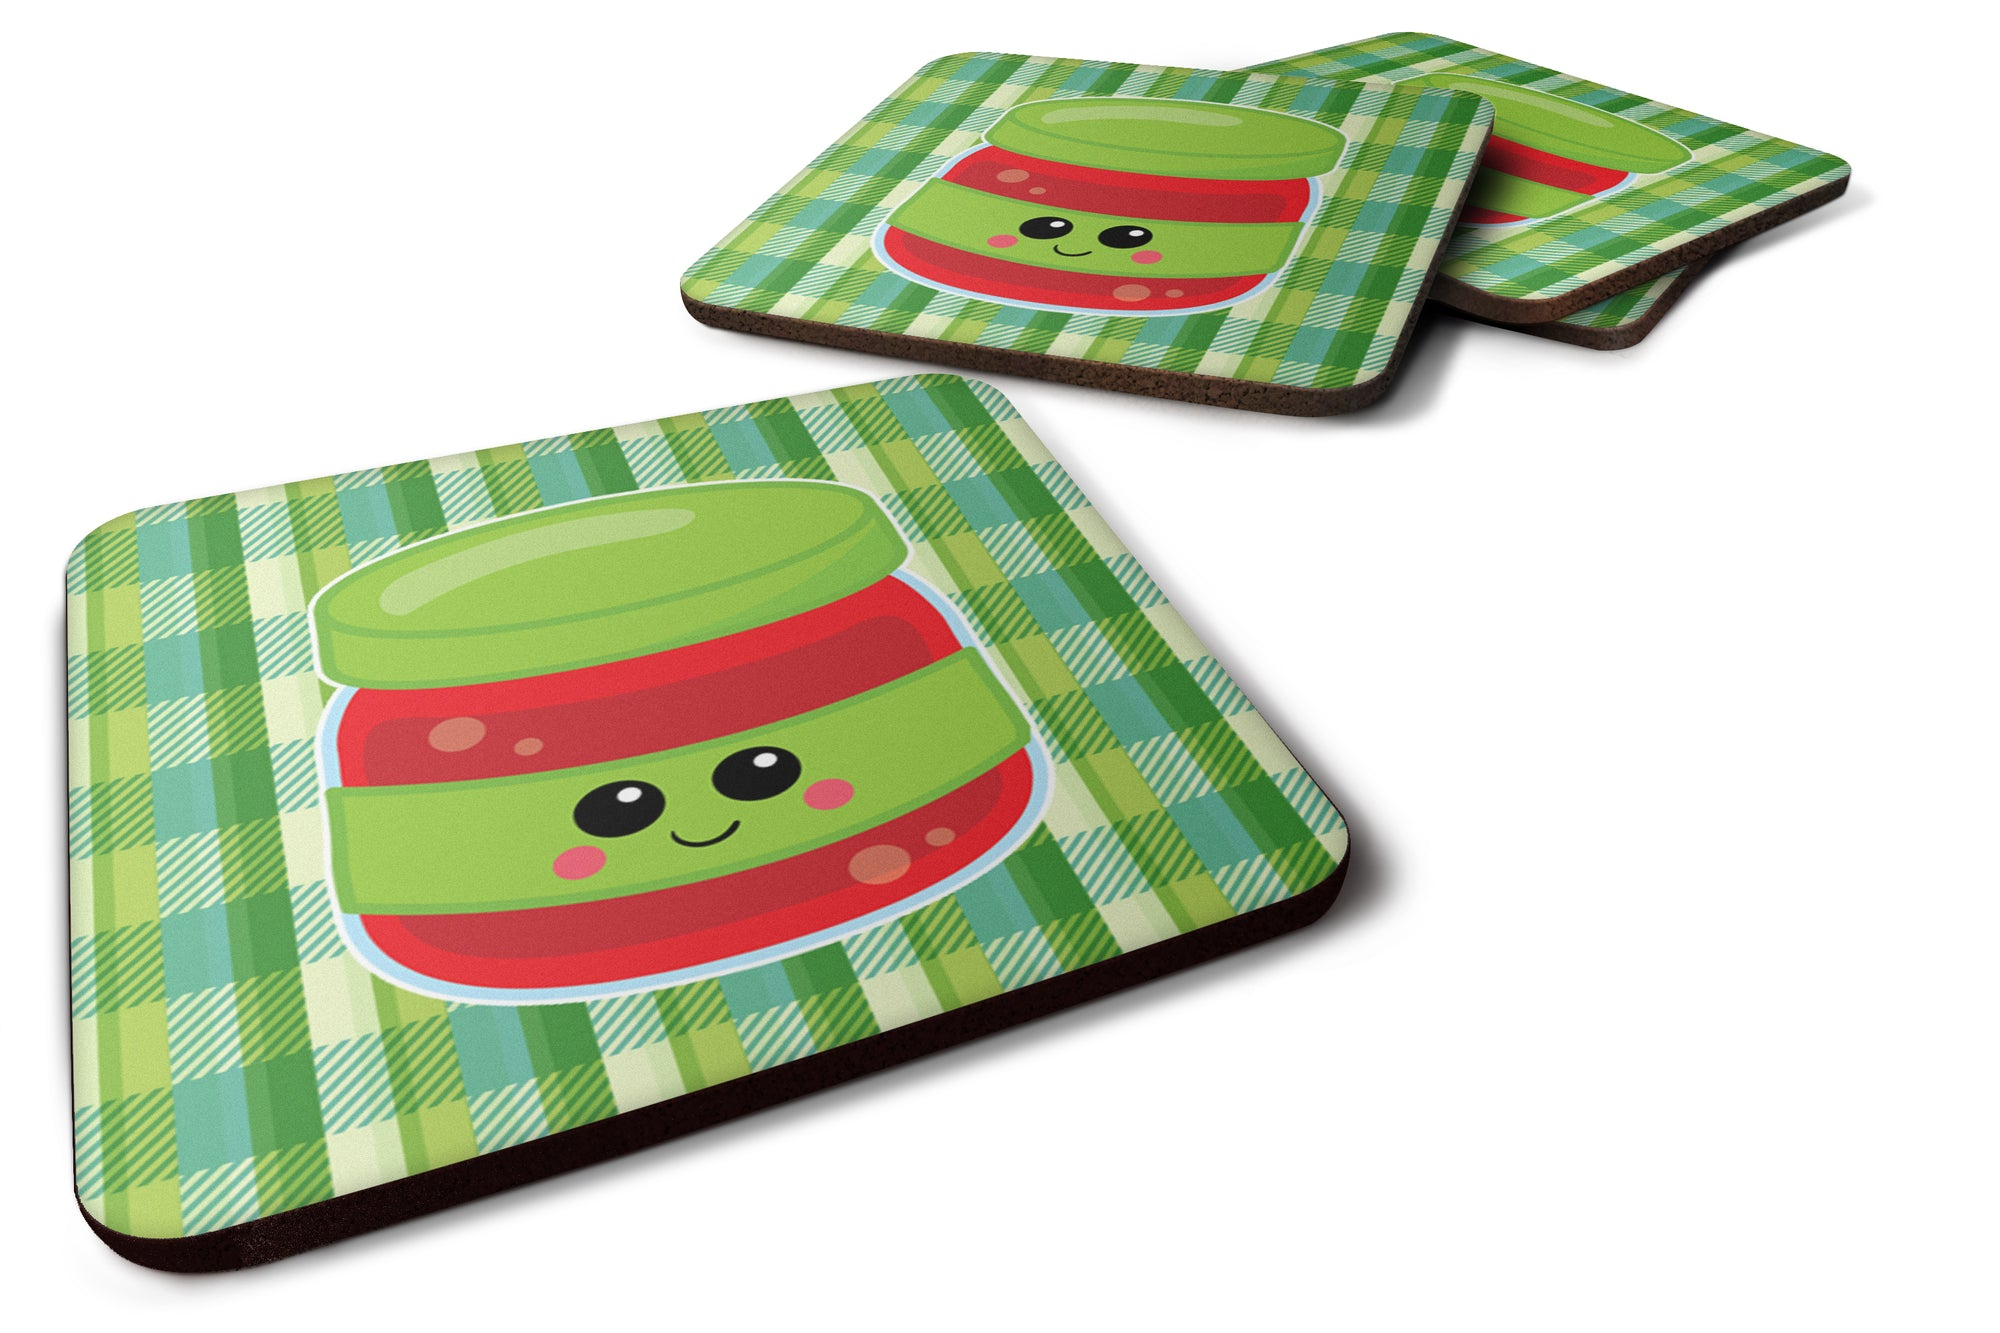 Jelly Jar Face Foam Coaster Set of 4 BB7051FC by Caroline's Treasures